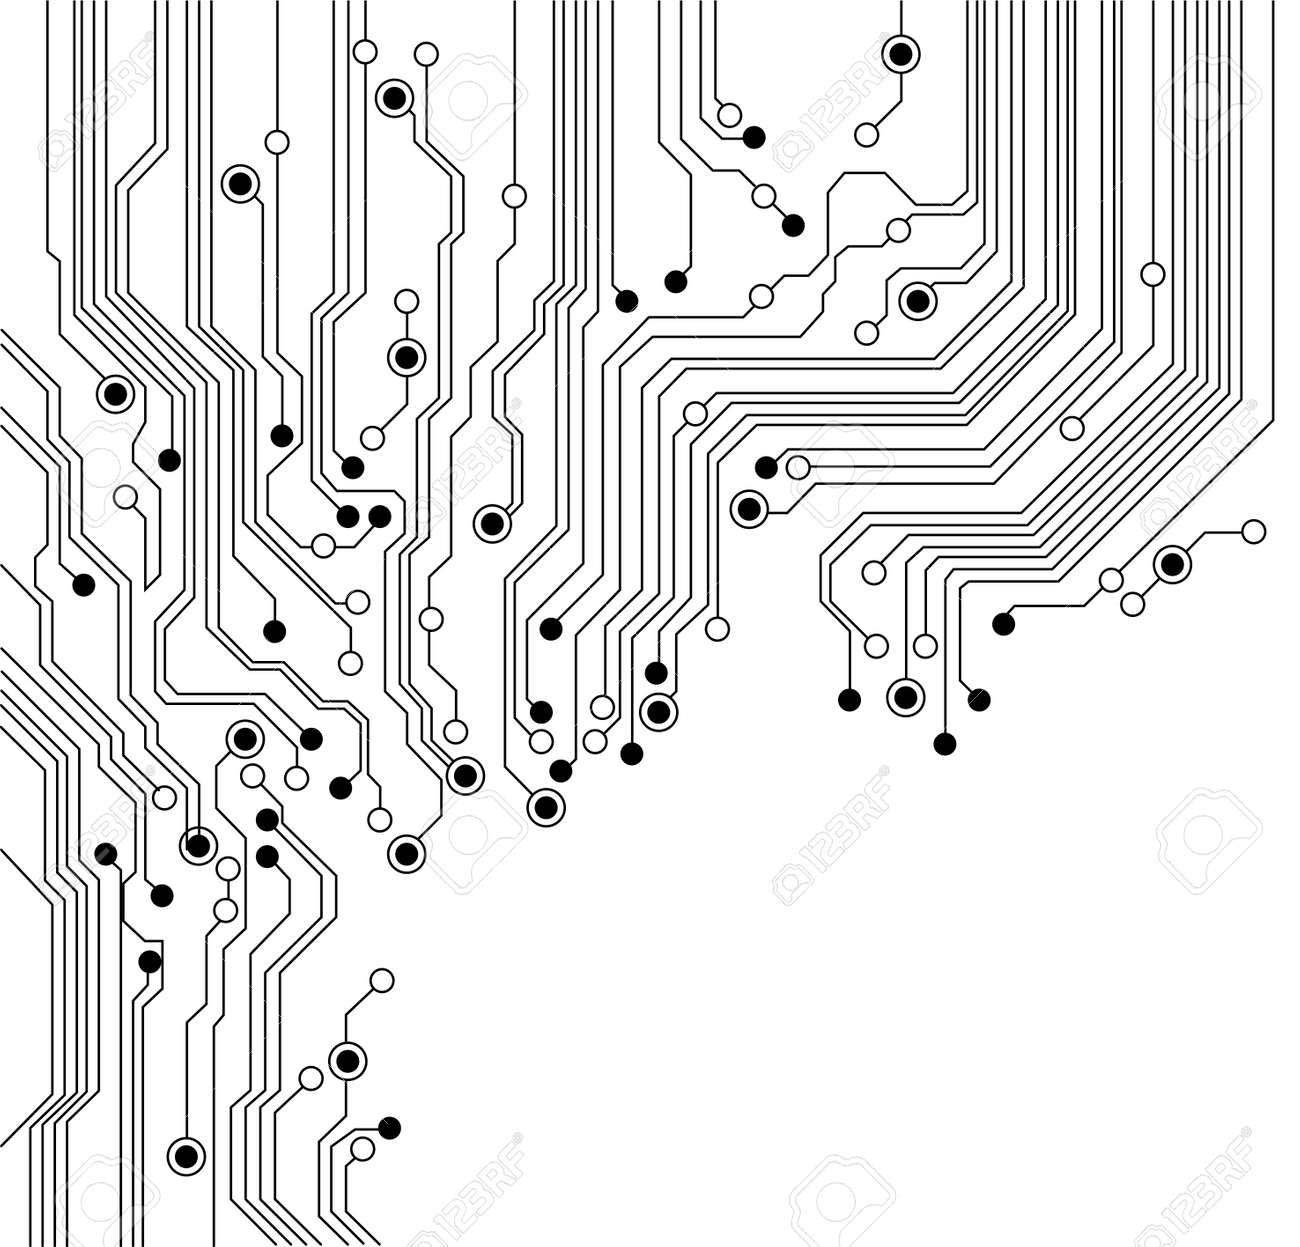 Circuit Board Background Texture - Isolated - Vector Is Available ...